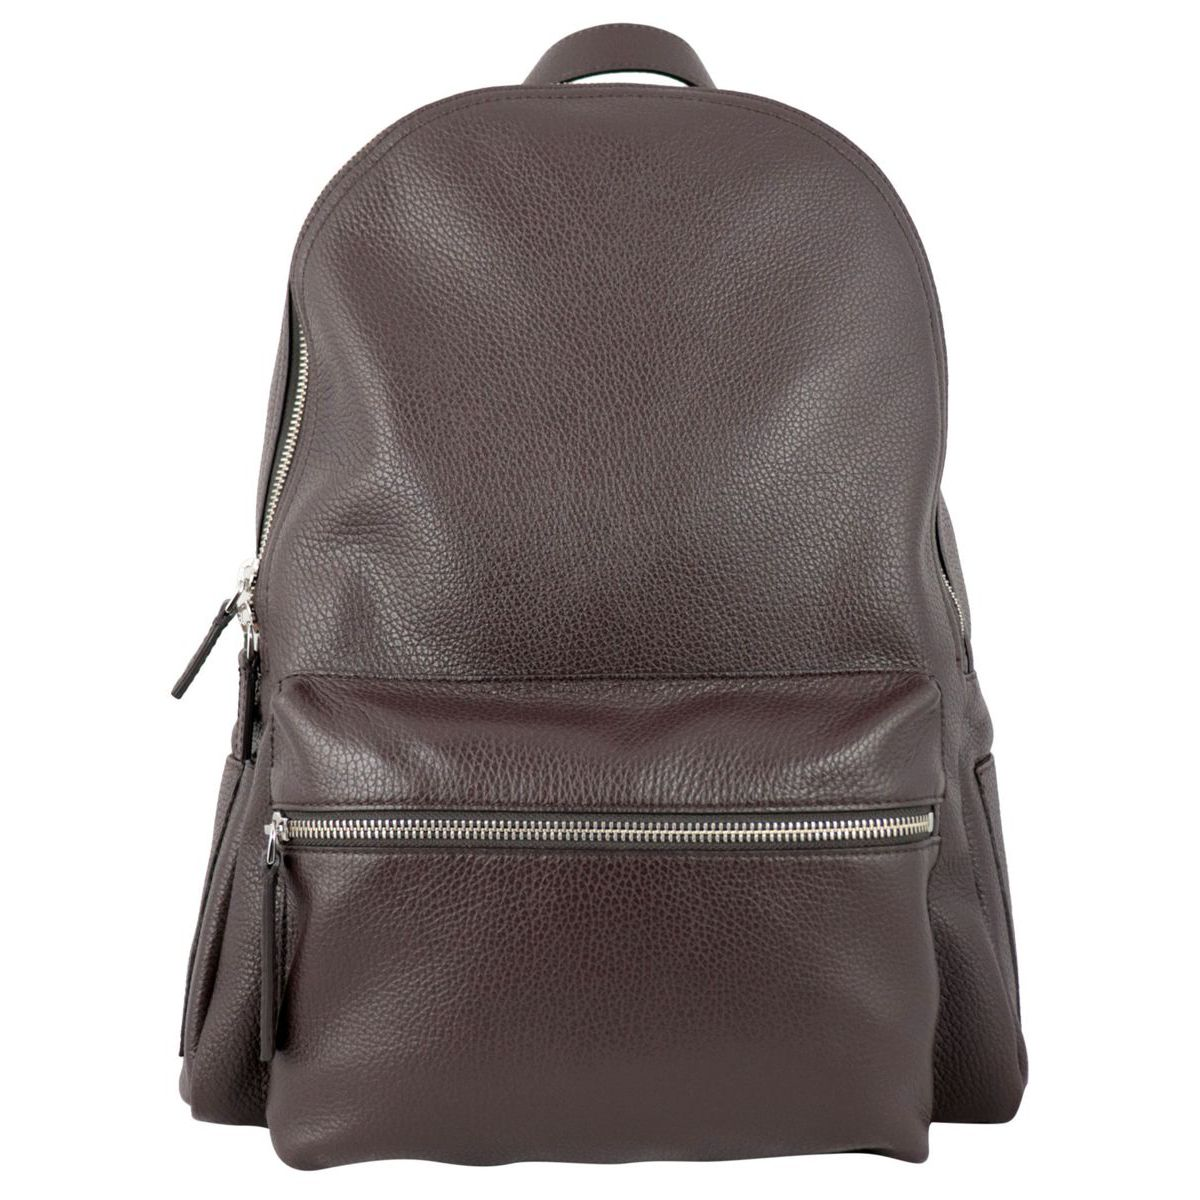 Set City Micron backpack in textured leather Ebony Orciani